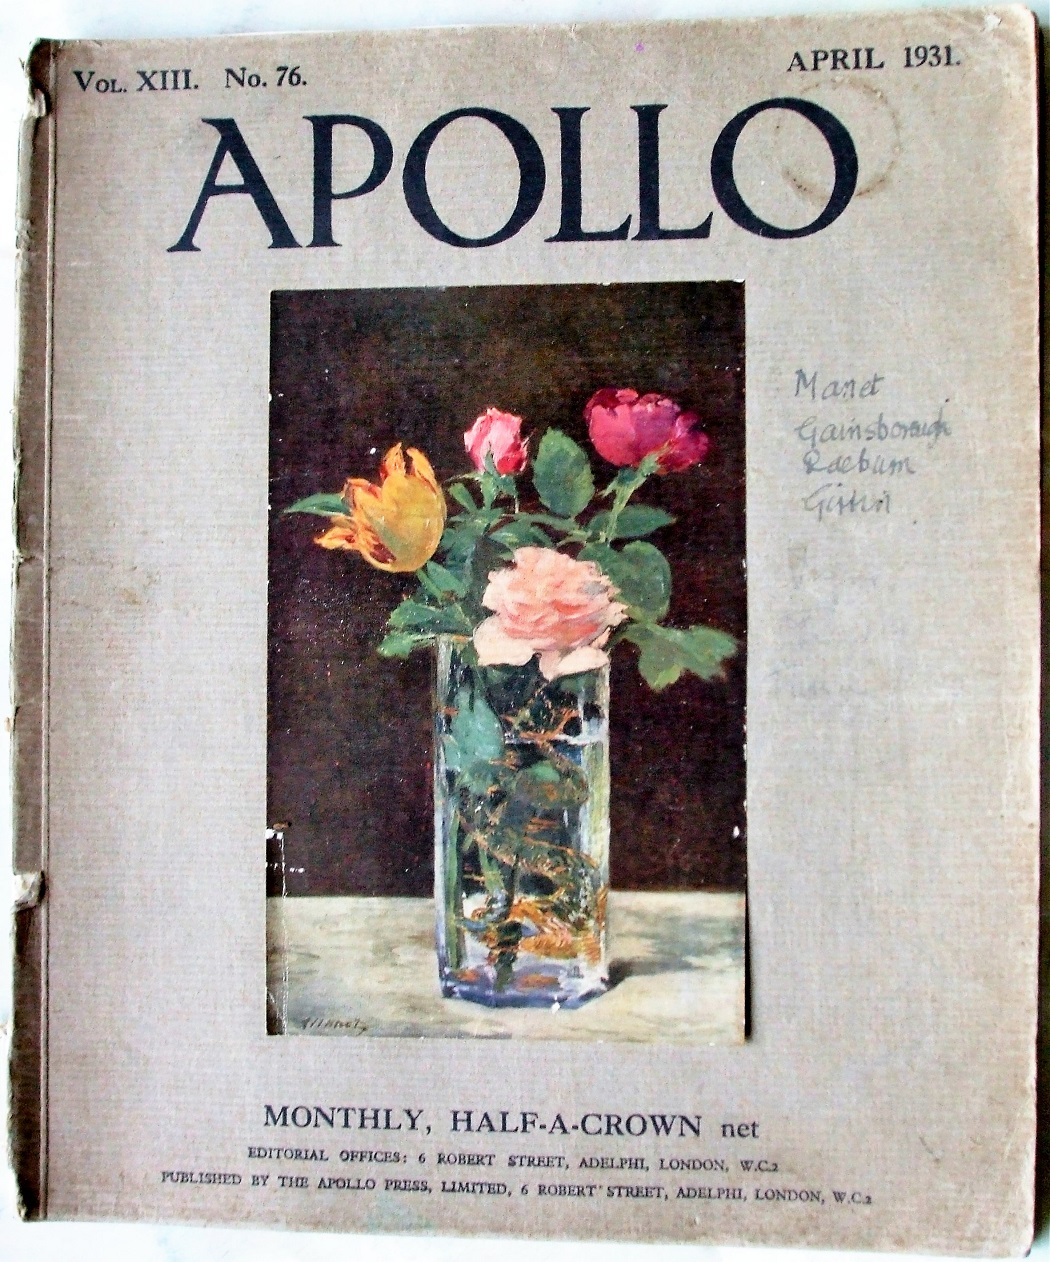 Apollo April 1931